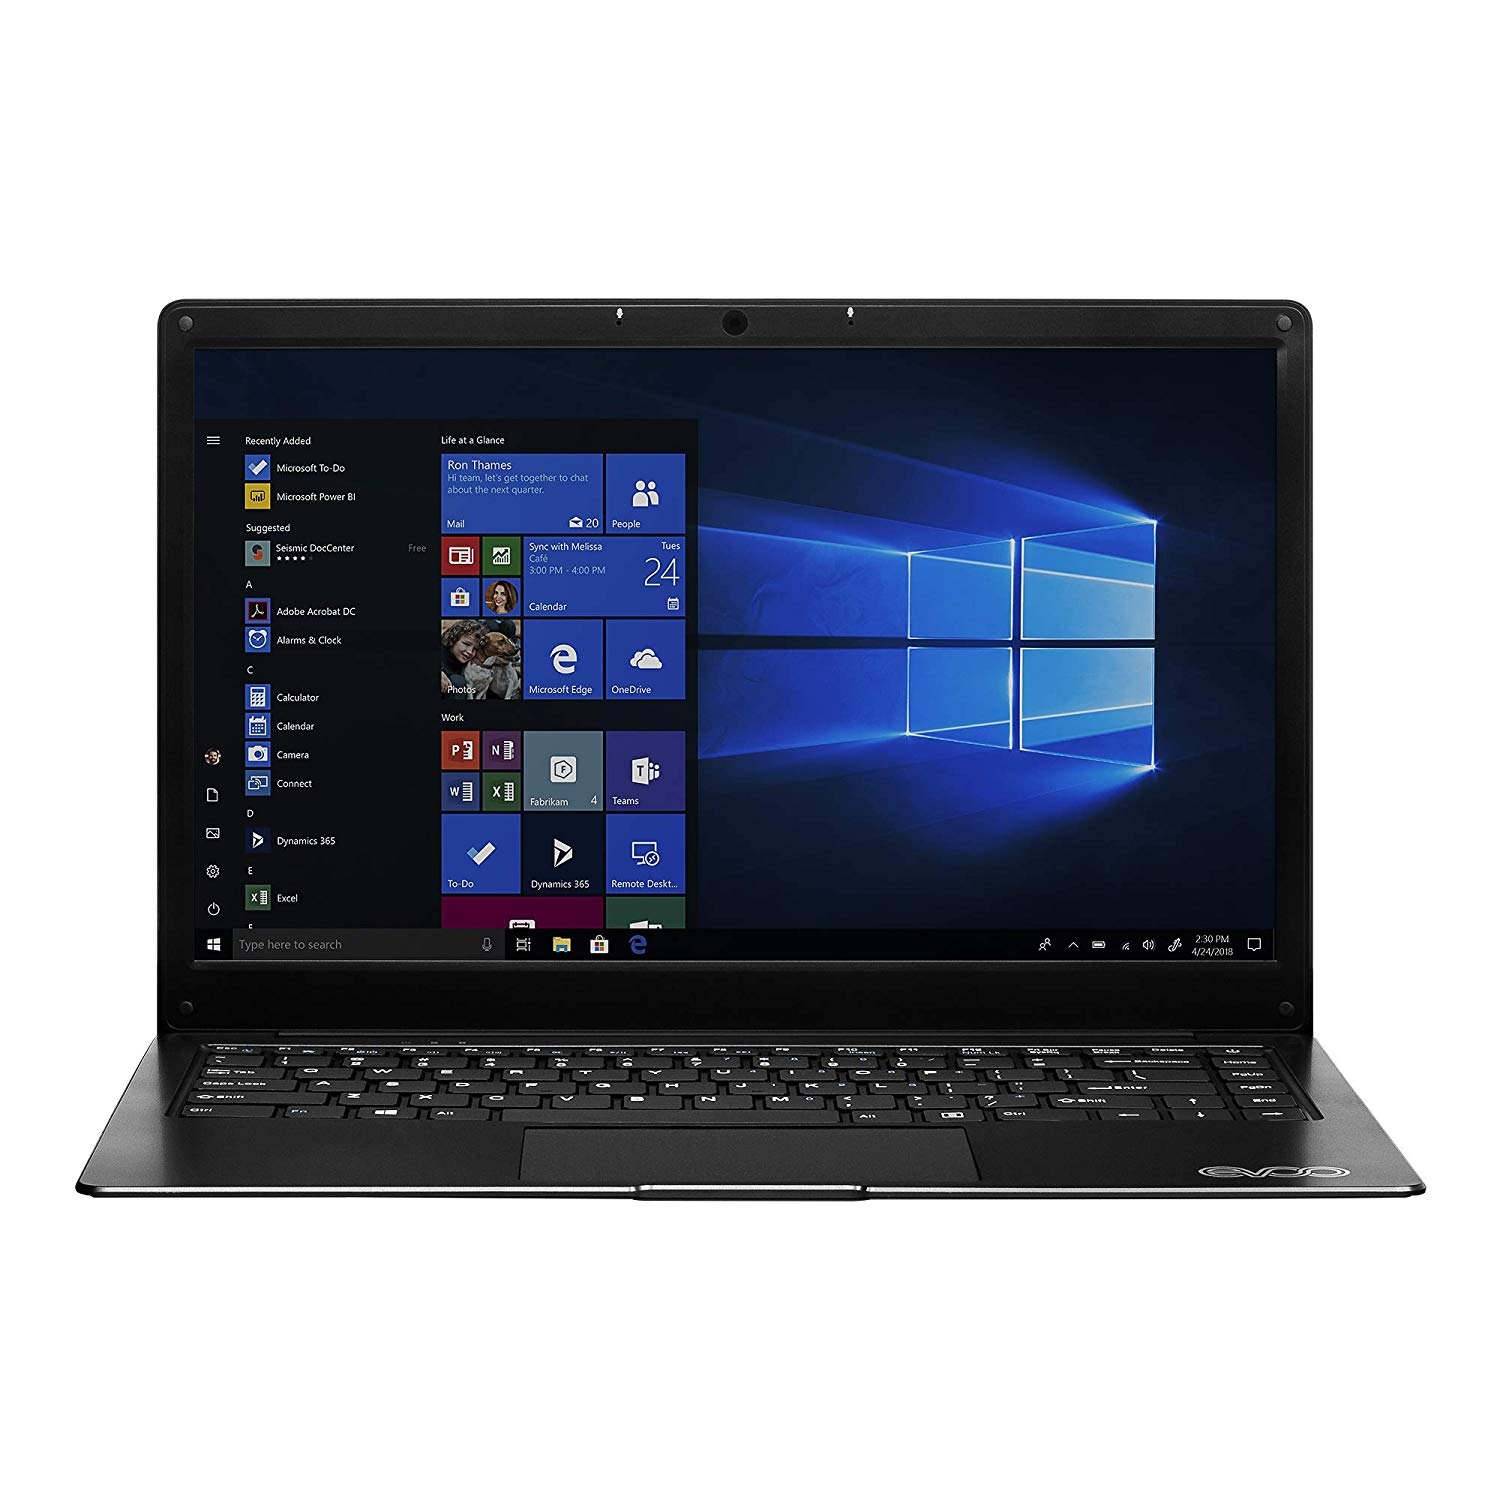 "EVOO 14.1"" Ultra Thin Laptop FHD"